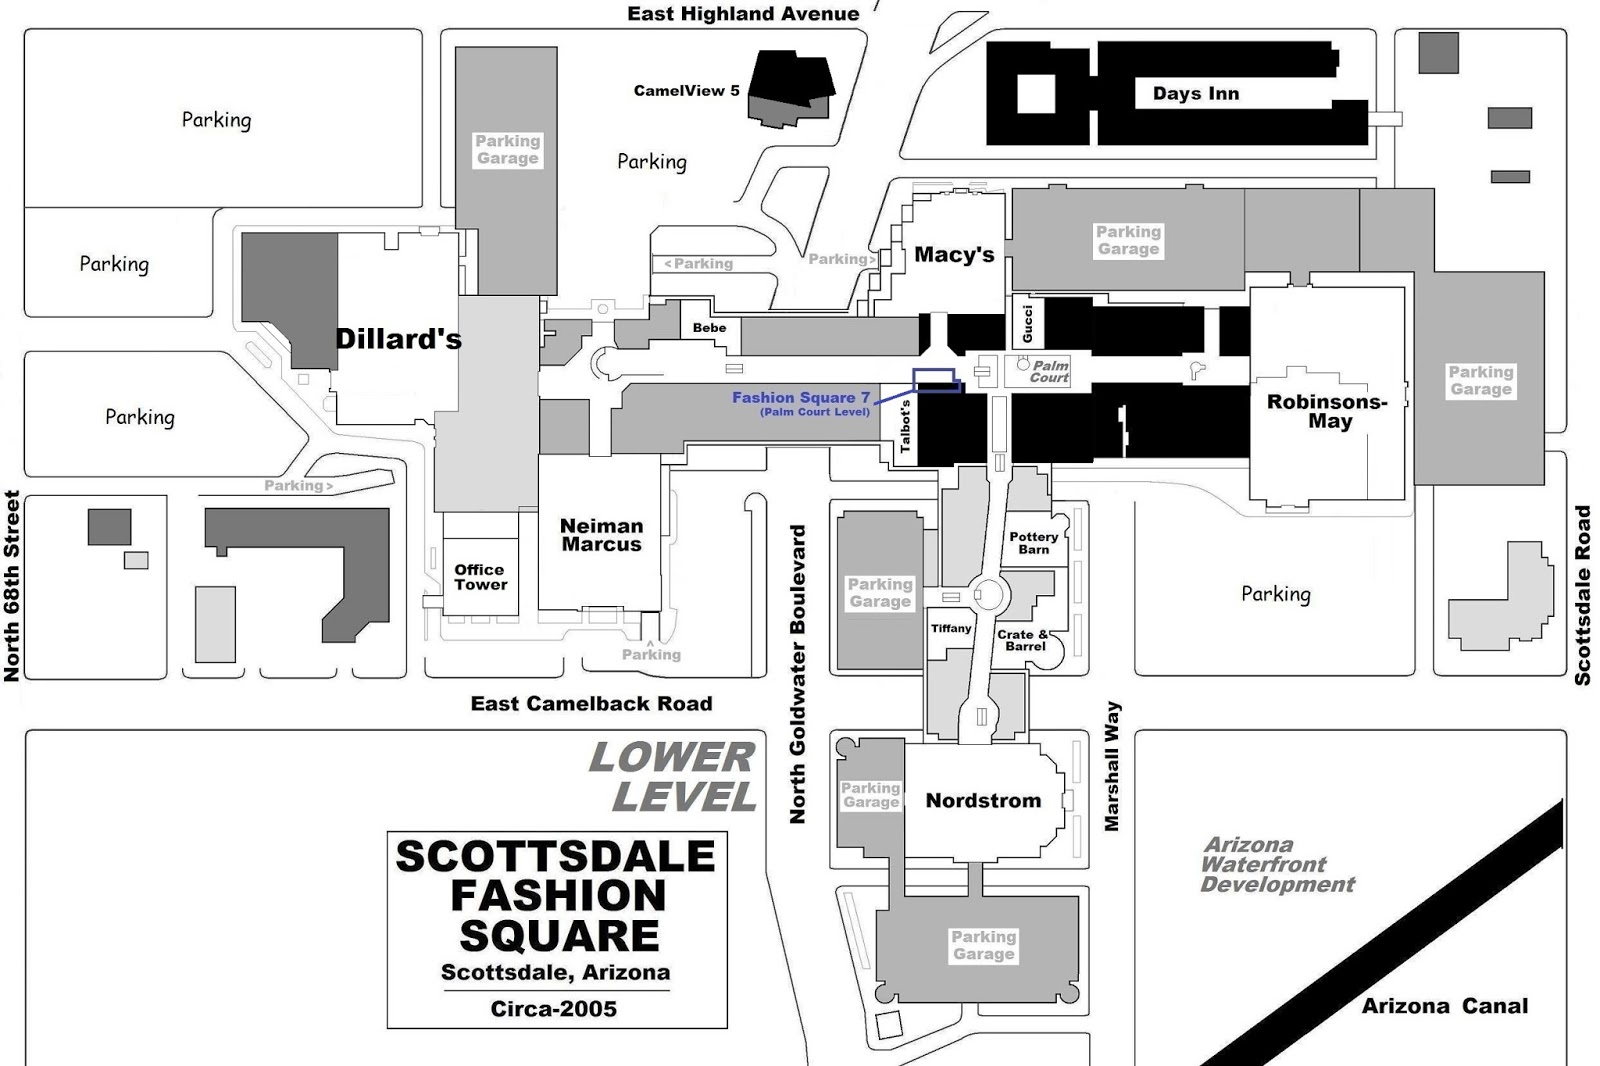 mall hall of fame october 2007 the bulk of the post 1980s mall consists of 2 retail floors the lower and upper levels a section lying between macy s and crate barrel also has a